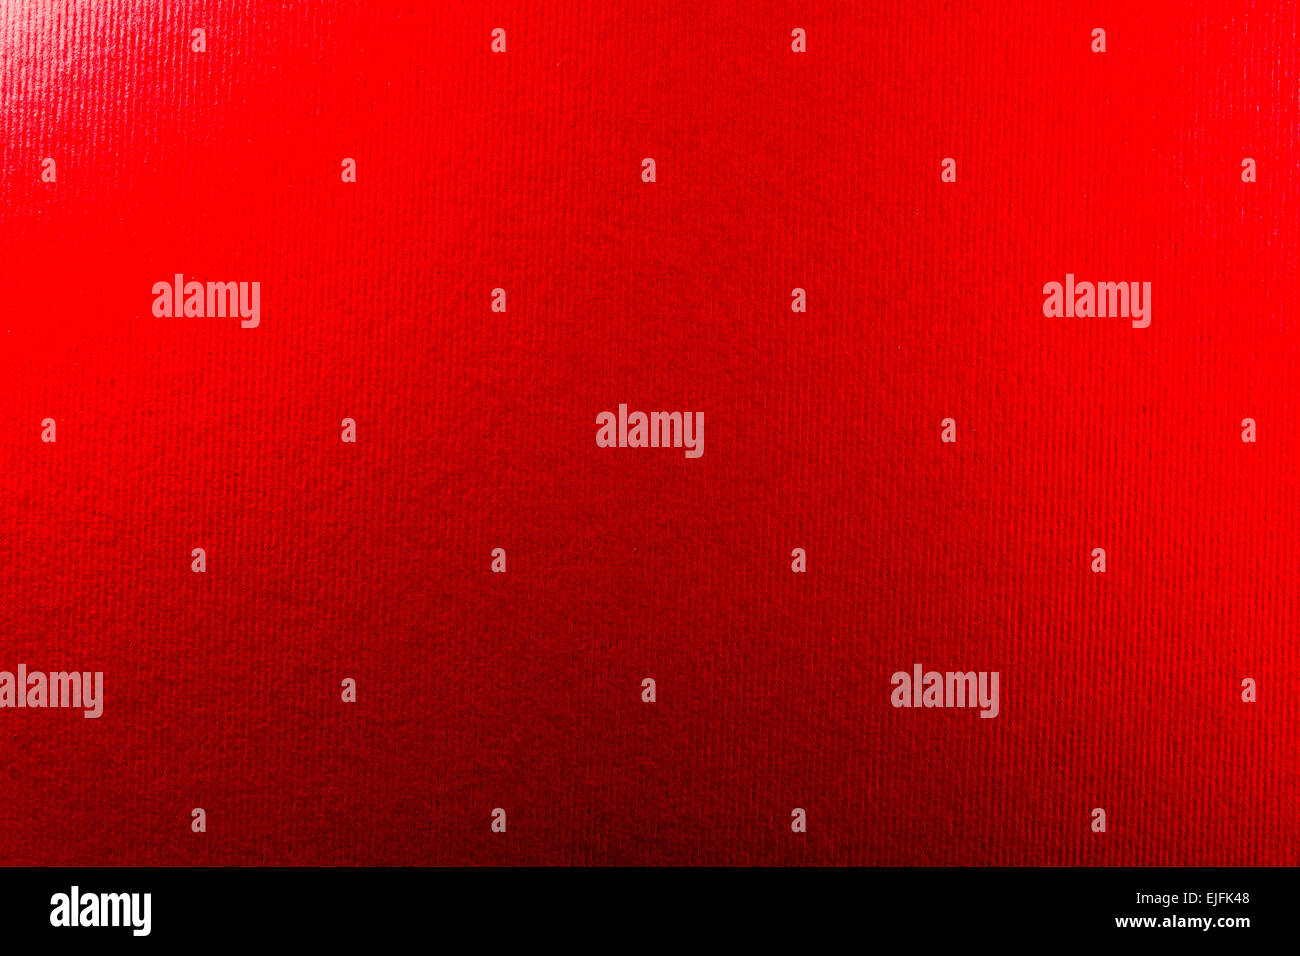 Close up of red leather texture from animal skin - Stock Image